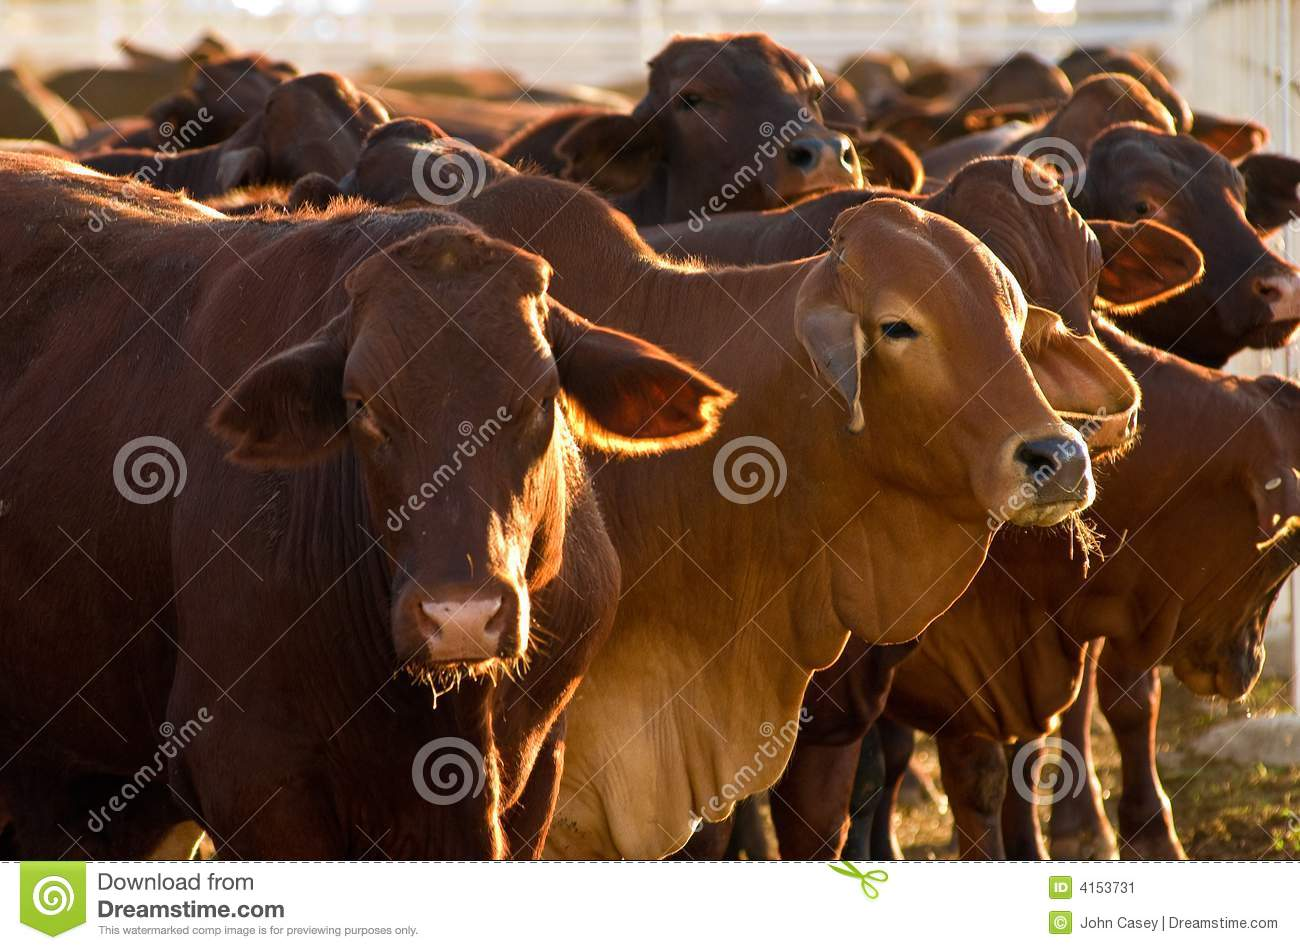 Cattle In Yards Stock Image - Image: 4153731